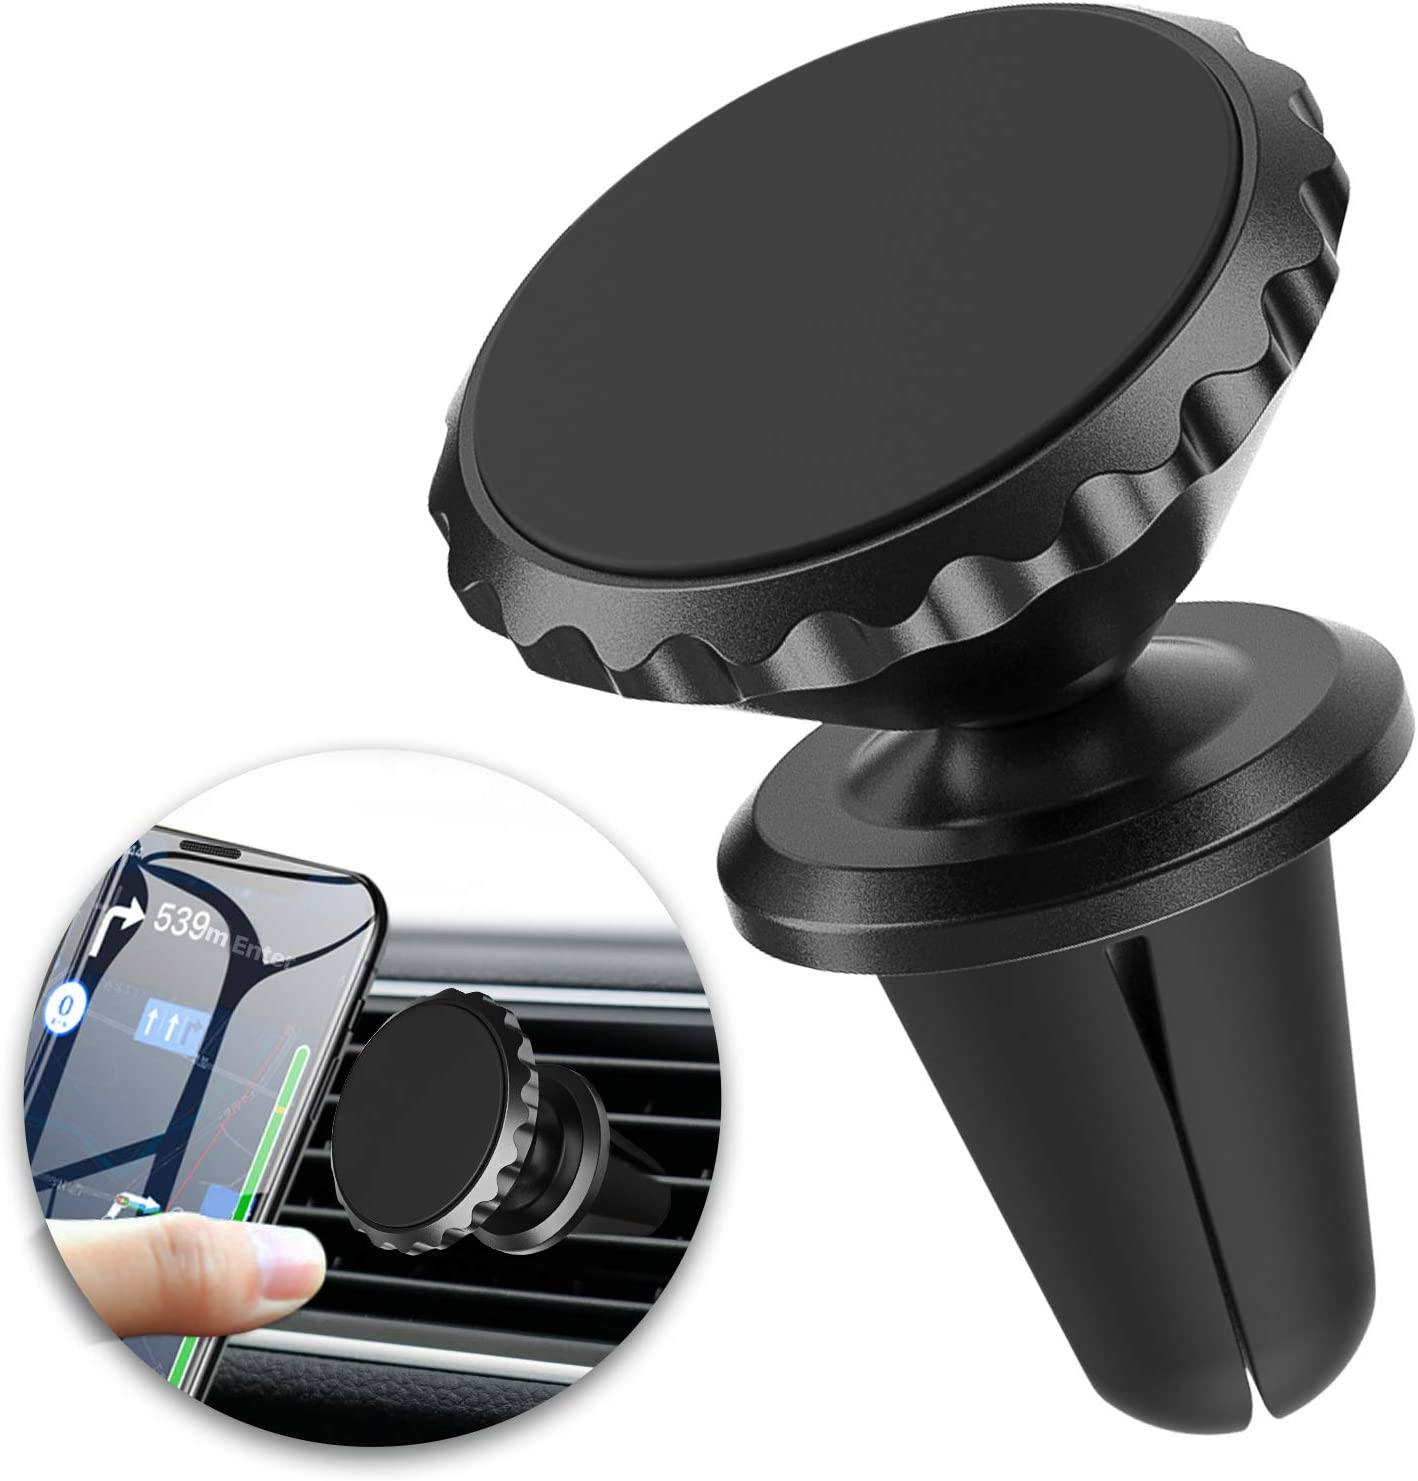 Magnetic Phone Holder Mount for Car Air Vent Unobstructed Car Vent Mount 2021 New Cell Phone Holder Super Strong Magnet Vent Phone Holder 360/° Rotation Car Dashboard Stand for iPhone Samsung